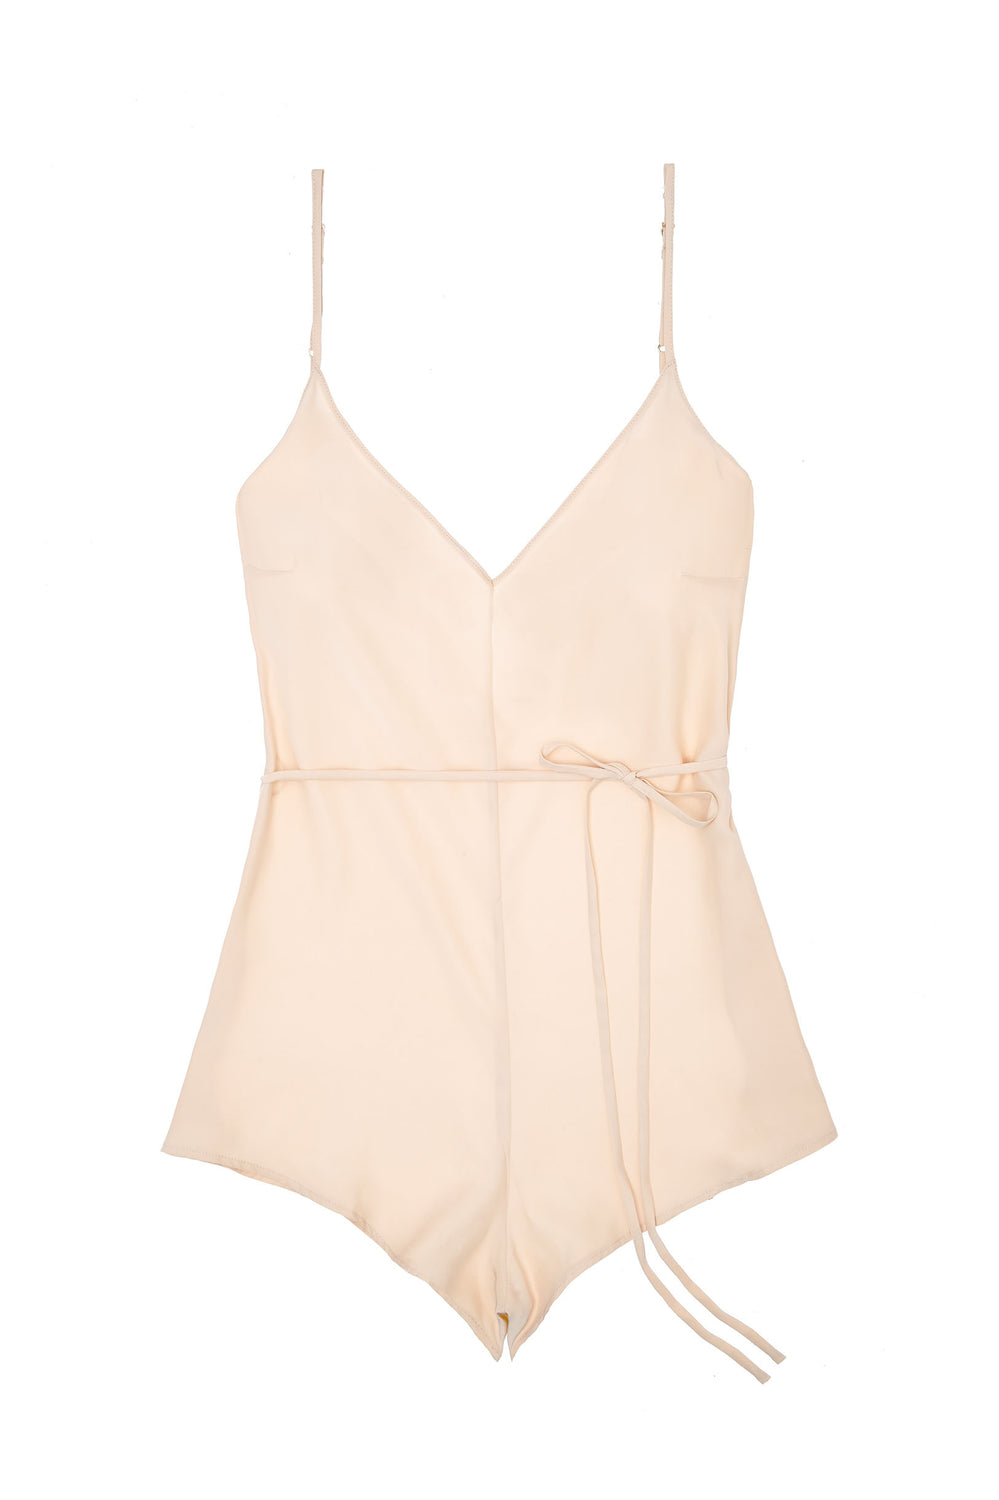 Dream Day Silk Romper Playsuit in Blush pink